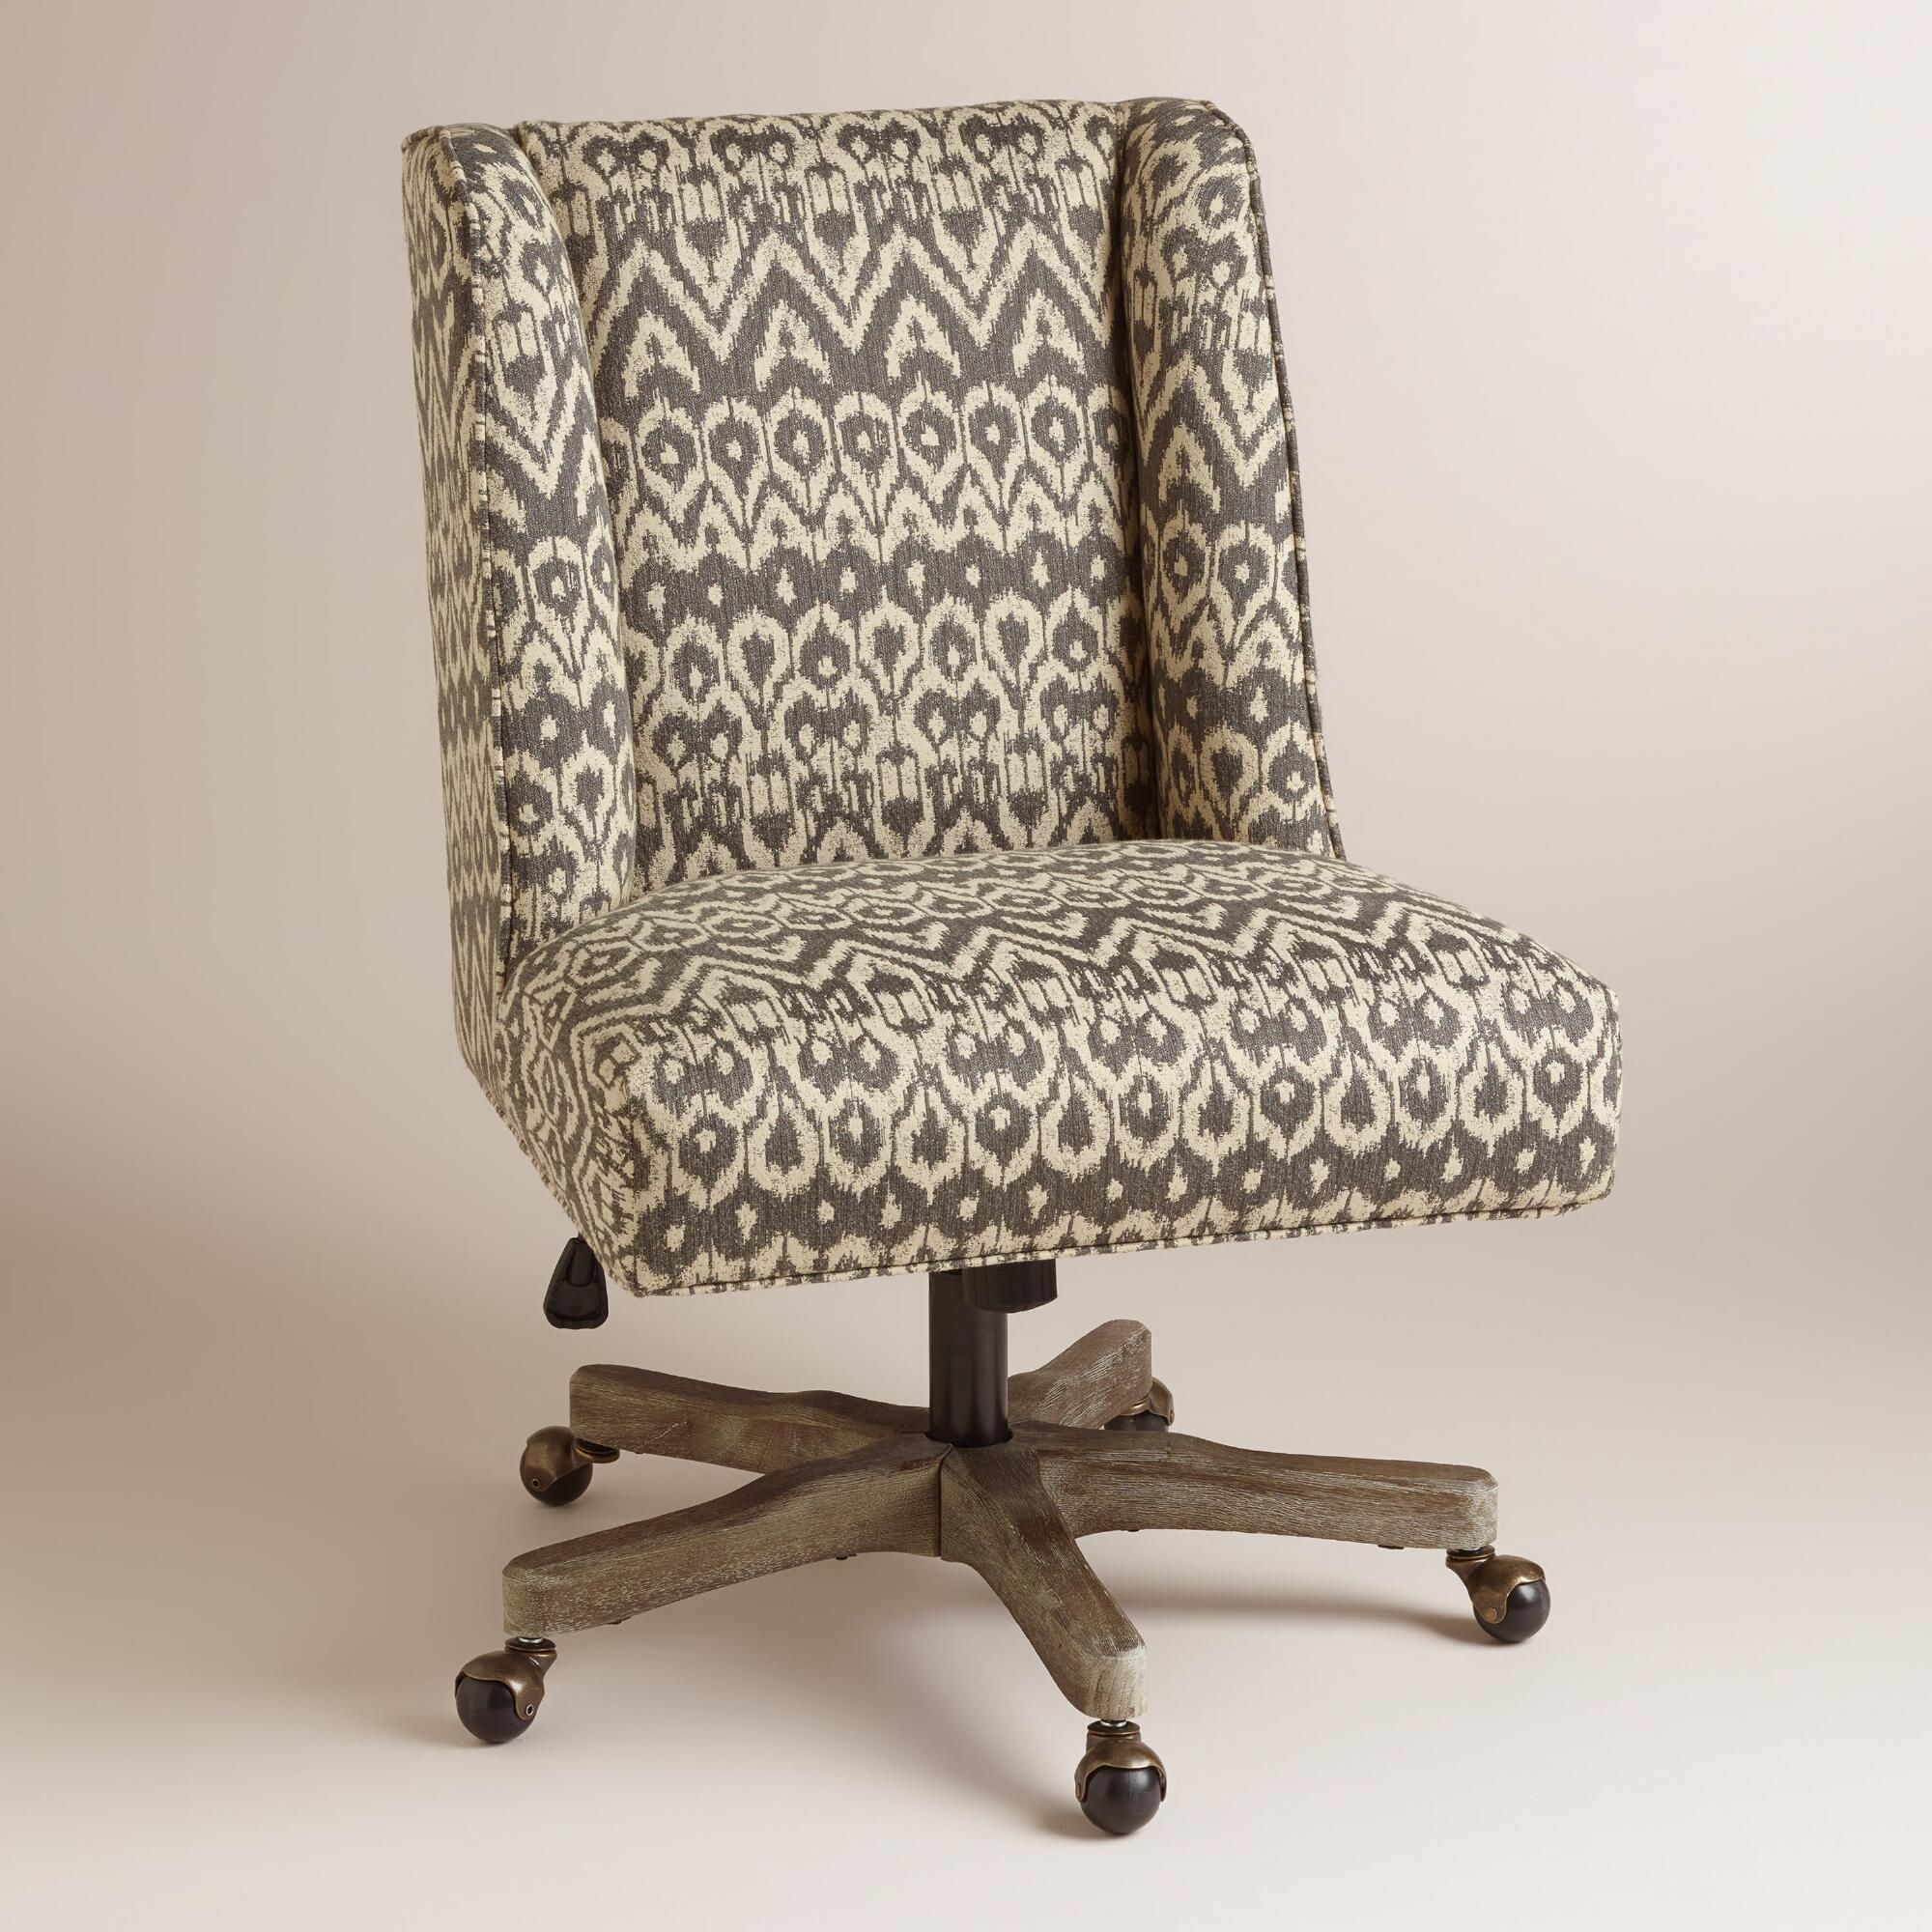 4a7e2f26c07 With an updated wingback profile and charcoal gray ikat-patterned fabric  upholstery